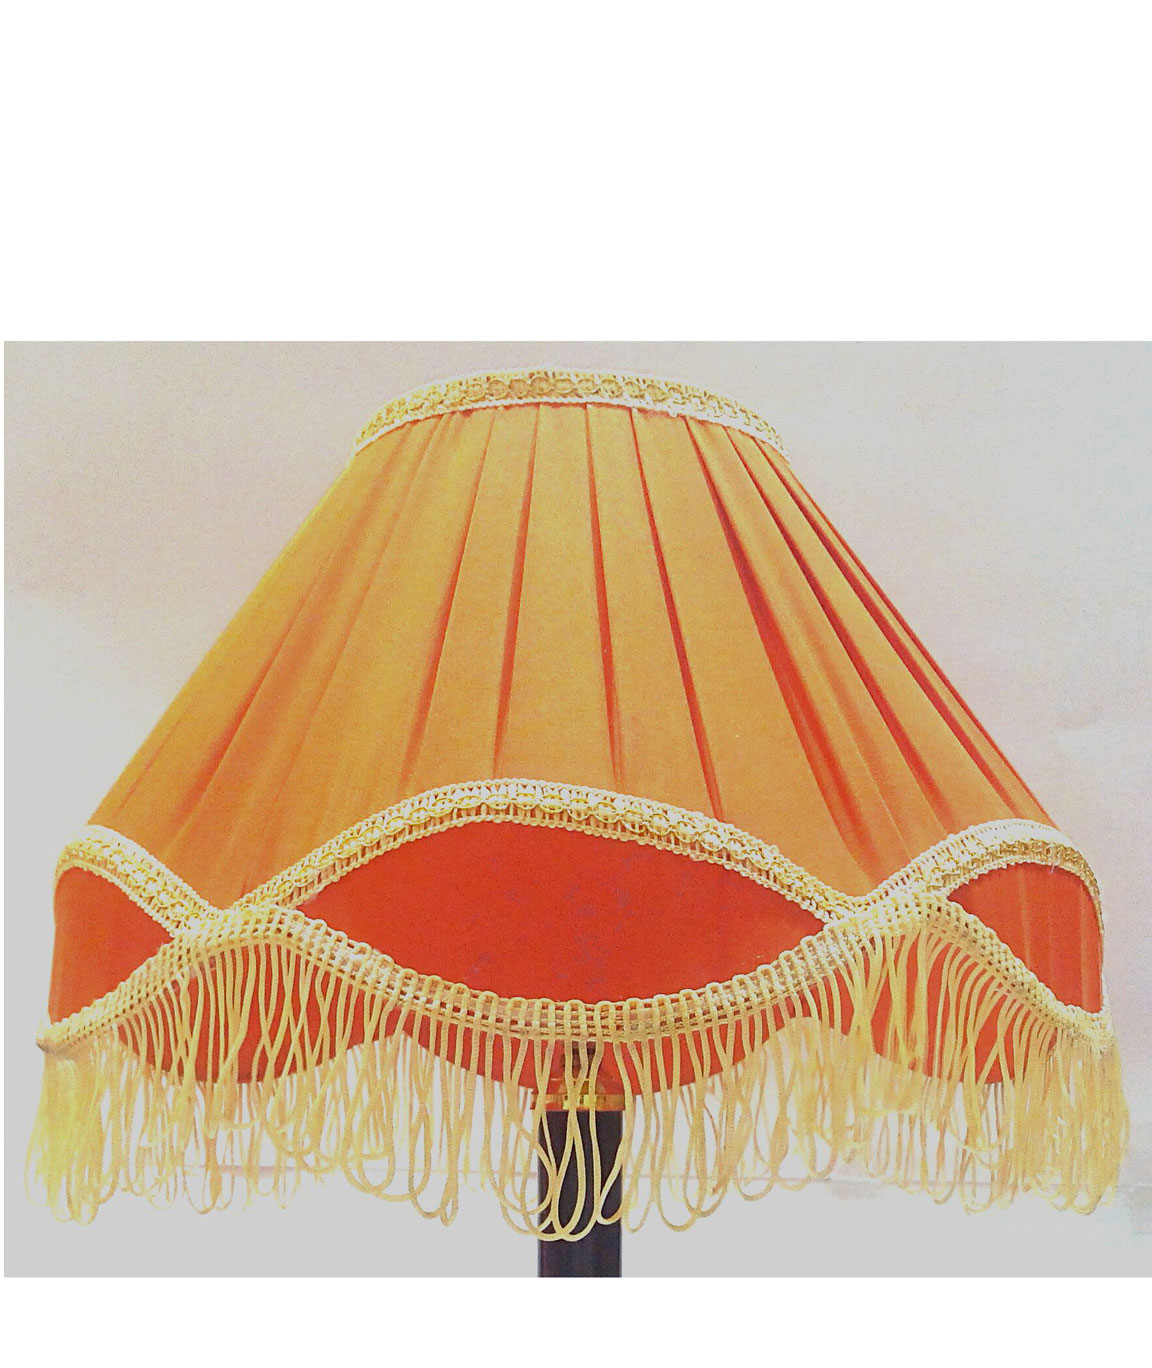 RDC 12 Inches Round Pleated Orange with Golden Lace Border with Frills Lamp Shade for Table Lamp